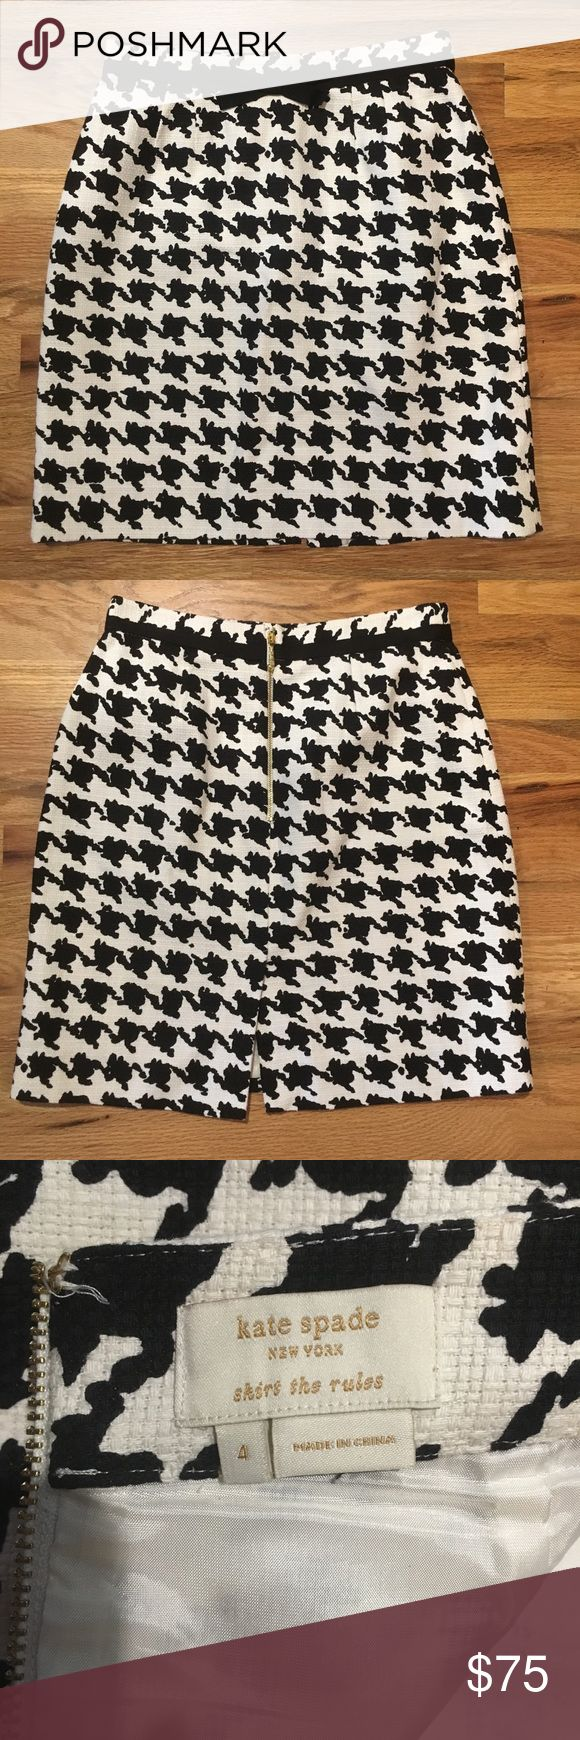 Kate Spade skirt - size 4 - only worn once Kate Spade Skirt the Rules Skirt in great condition. Only worn once. Size 4 kate spade Skirts Mini